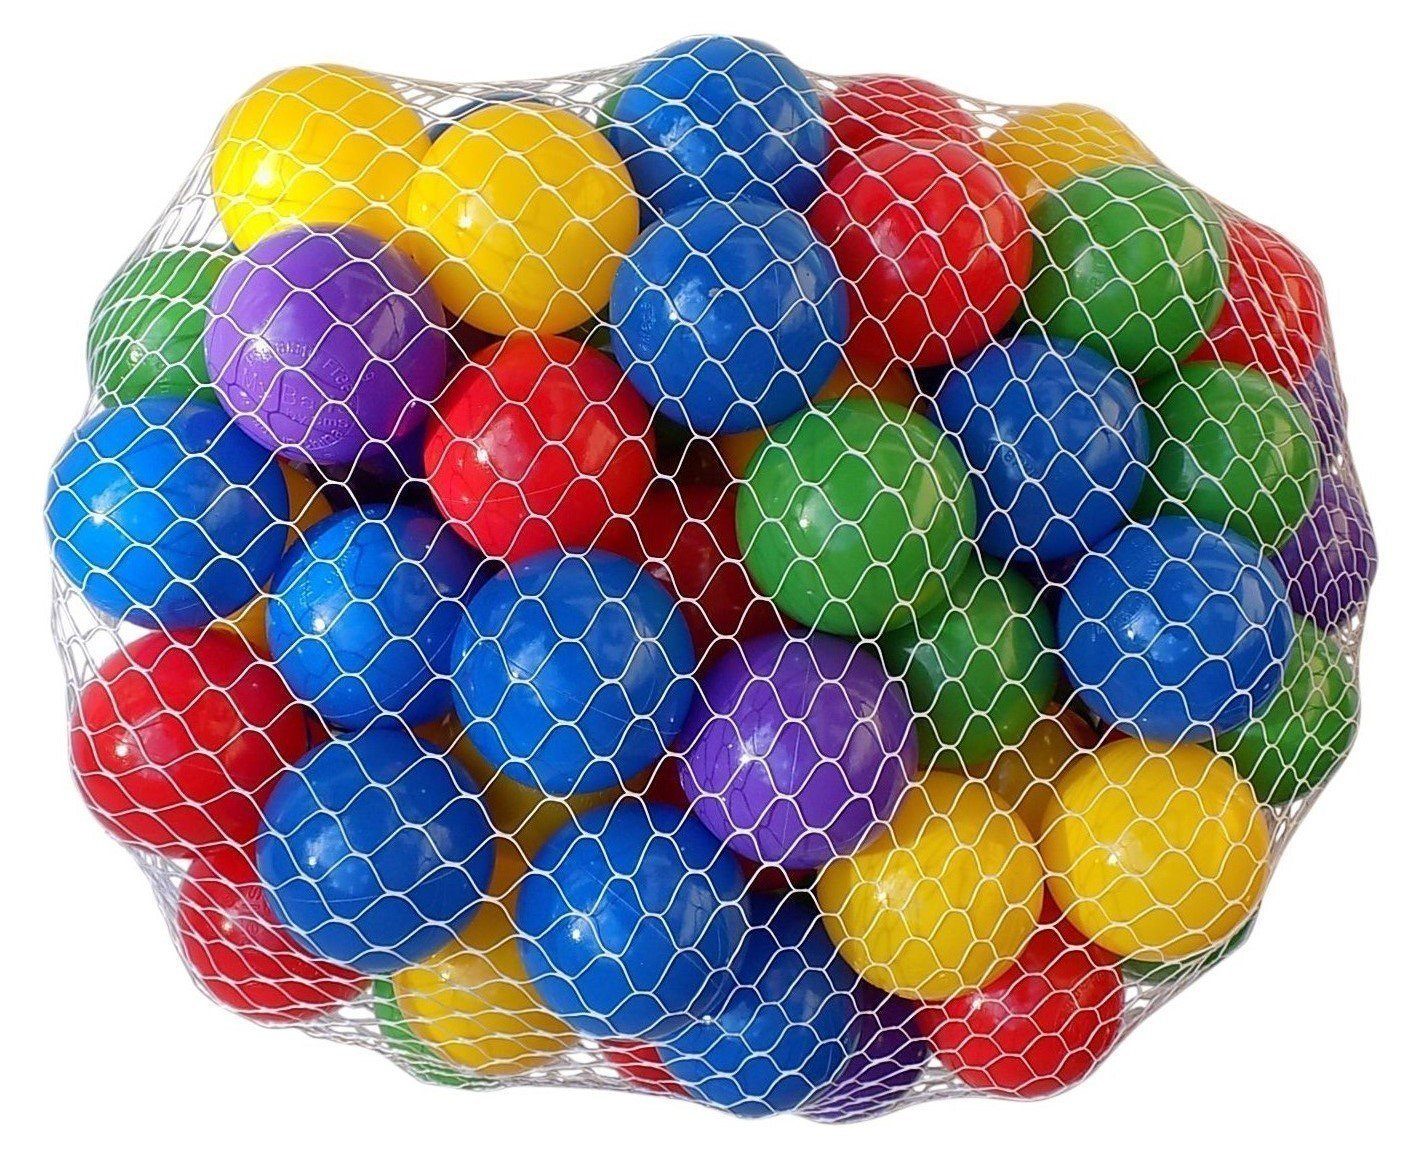 My Balls Pack of 200 Large 2.5 65mm Ball Pit Balls in 5 Bright Colors - Crush-Proof Air-Filled; Phthalate Free; BPA Free; Non-Toxic; Non-PVC; Non-Recycled Plastic (Pack of 200) CMS